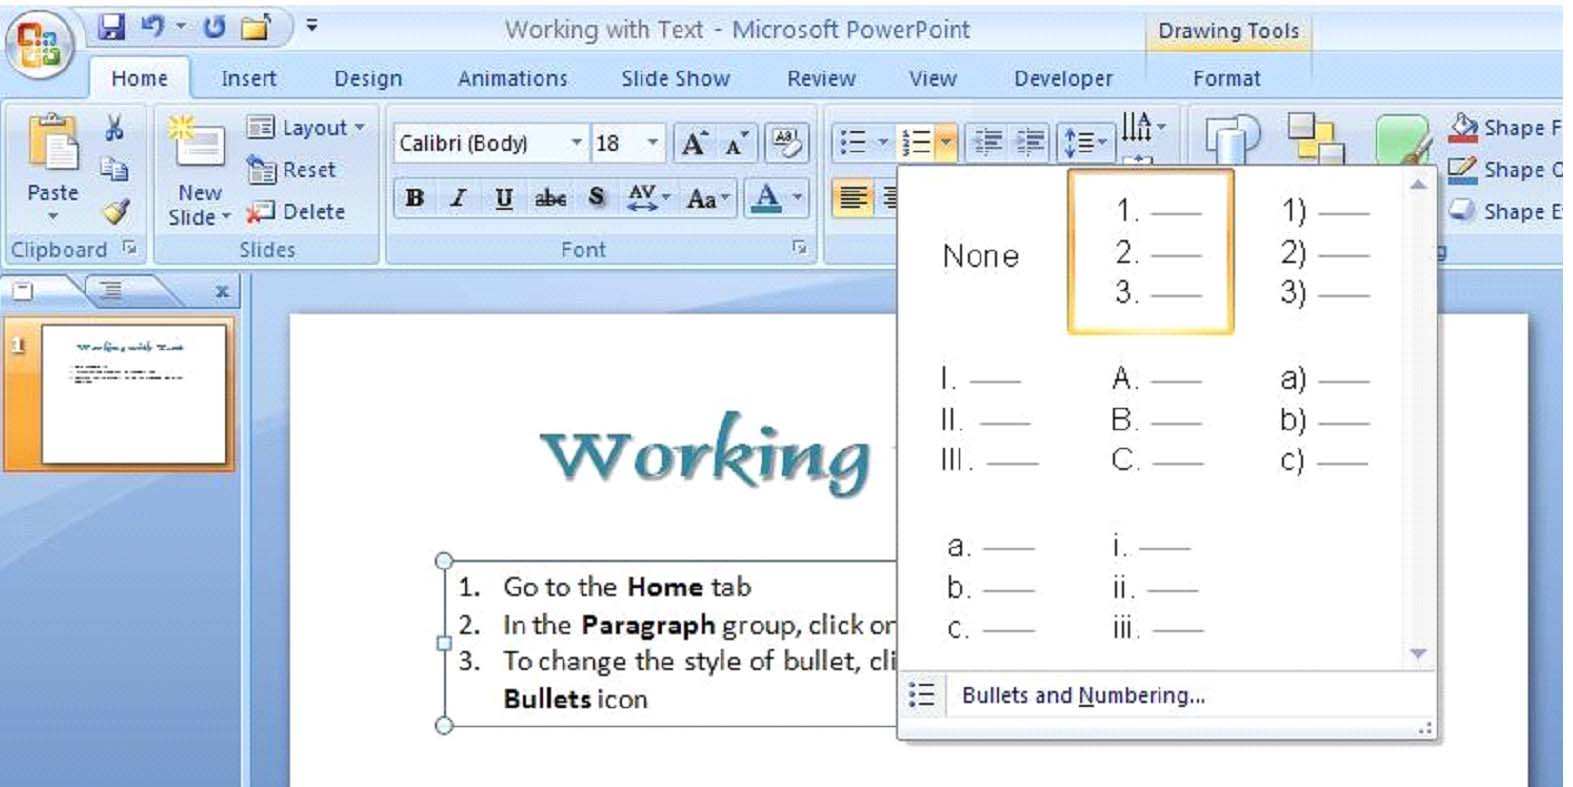 How to Work with Text in PowerPoint 2007   UniversalCl Home Tab Microsoft Word Art Designs on voting in microsoft word tab, twitter home tab, microsoft word home toolbar, onenote home tab, mac home tab, microsoft office tab, microsoft word home bar, paint home tab, excel home tab, microsoft word home button, windows home tab, start microsoft tab, microsoft word tools tab, microsoft word design tab, microsoft word mailings tab, microsoft access 2010 home tab, microsoft word references tab,